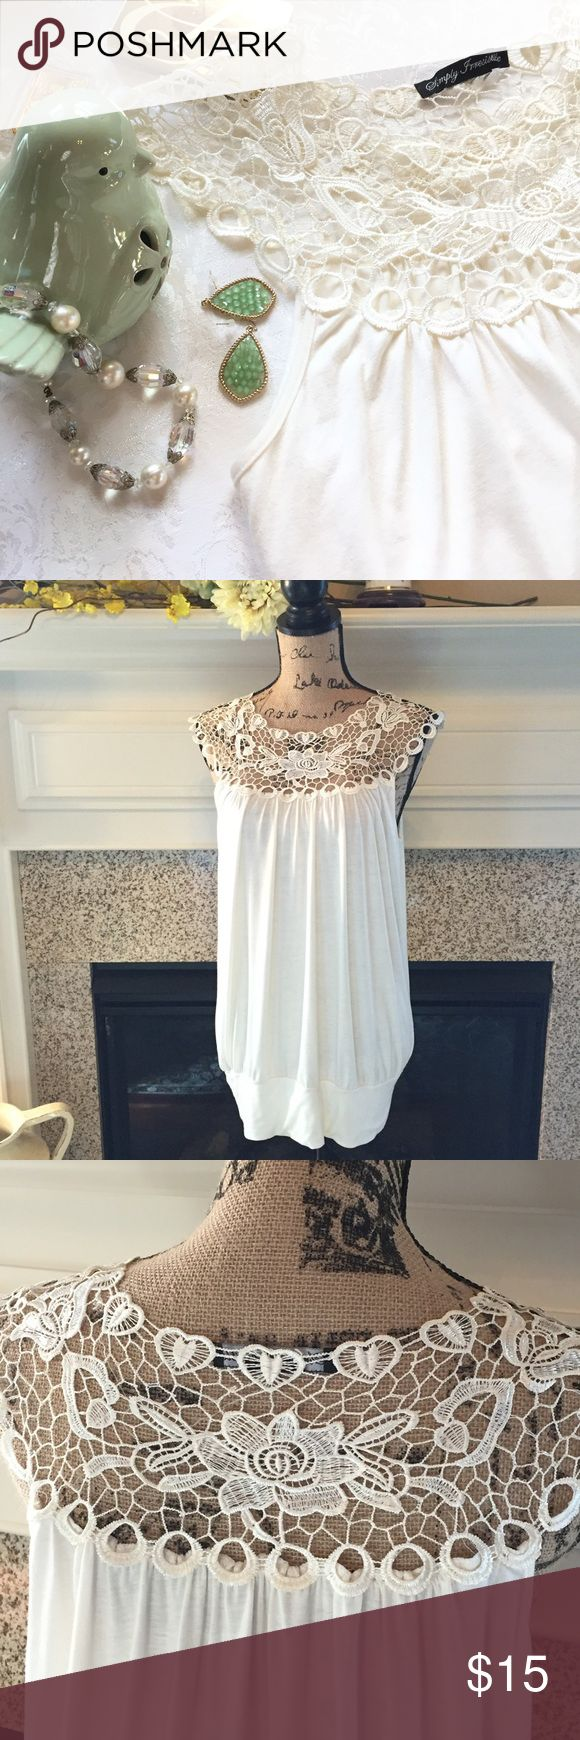 Simply Irresistible Women's Top Cream colored top with banded hem, soft polyester blend fabric, beautiful crocheted neckline, the tag was removed but should be a medium, measured flat, bust 20 inches and 29 inches from shoulder to hem, looks new, perfect with a pair of beige linen pants and flats SIMPLY IRRESISTABLE Tops Tunics